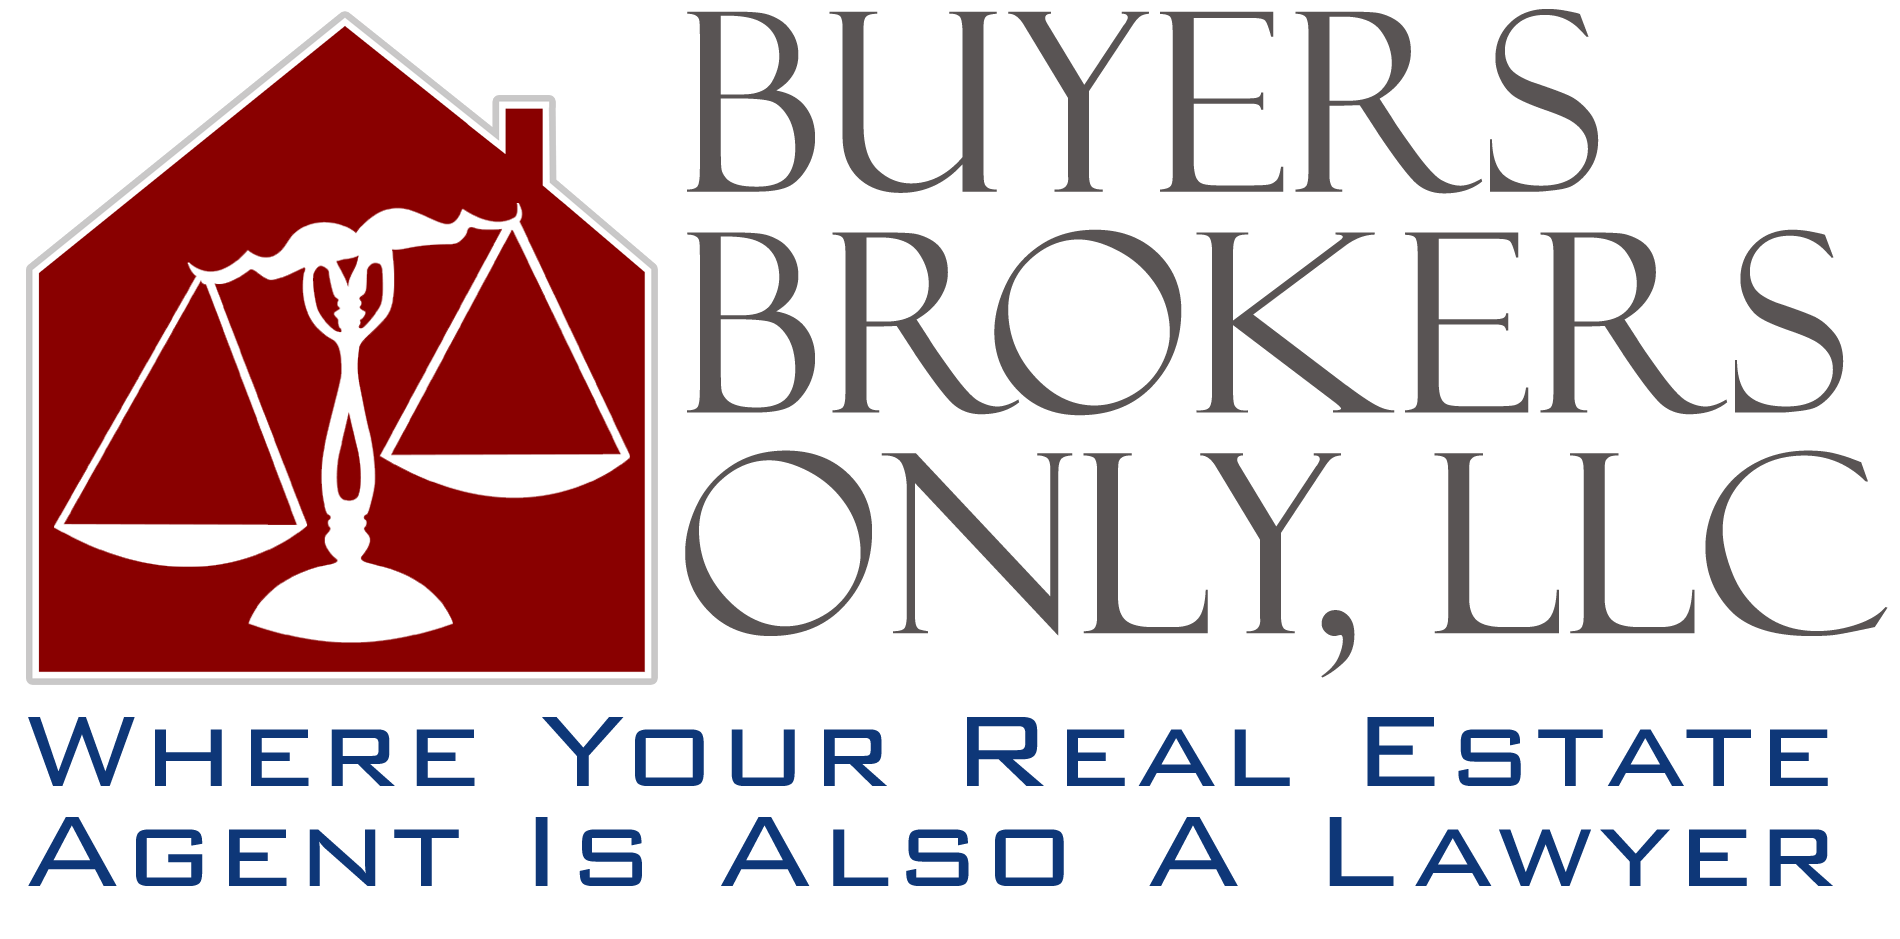 Massachusetts Exclusive Buyer Agents - Buyers Brokers Only, LLC logo